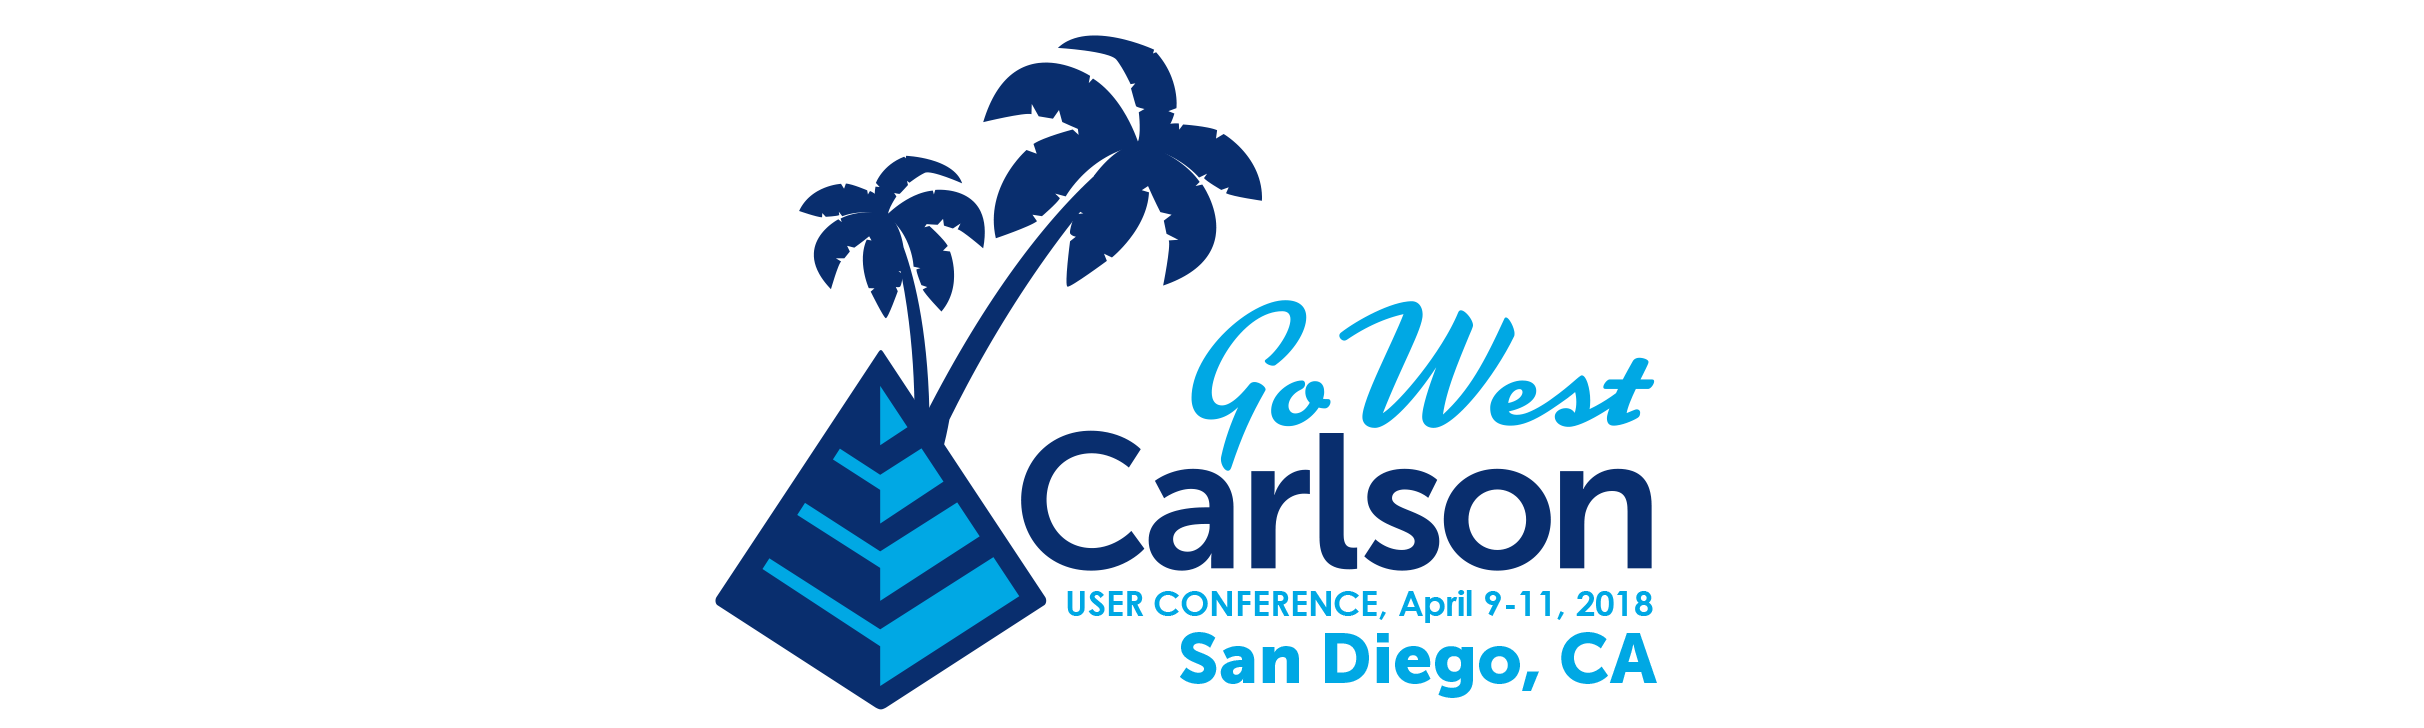 'Go West' Carlson User Conference 2018